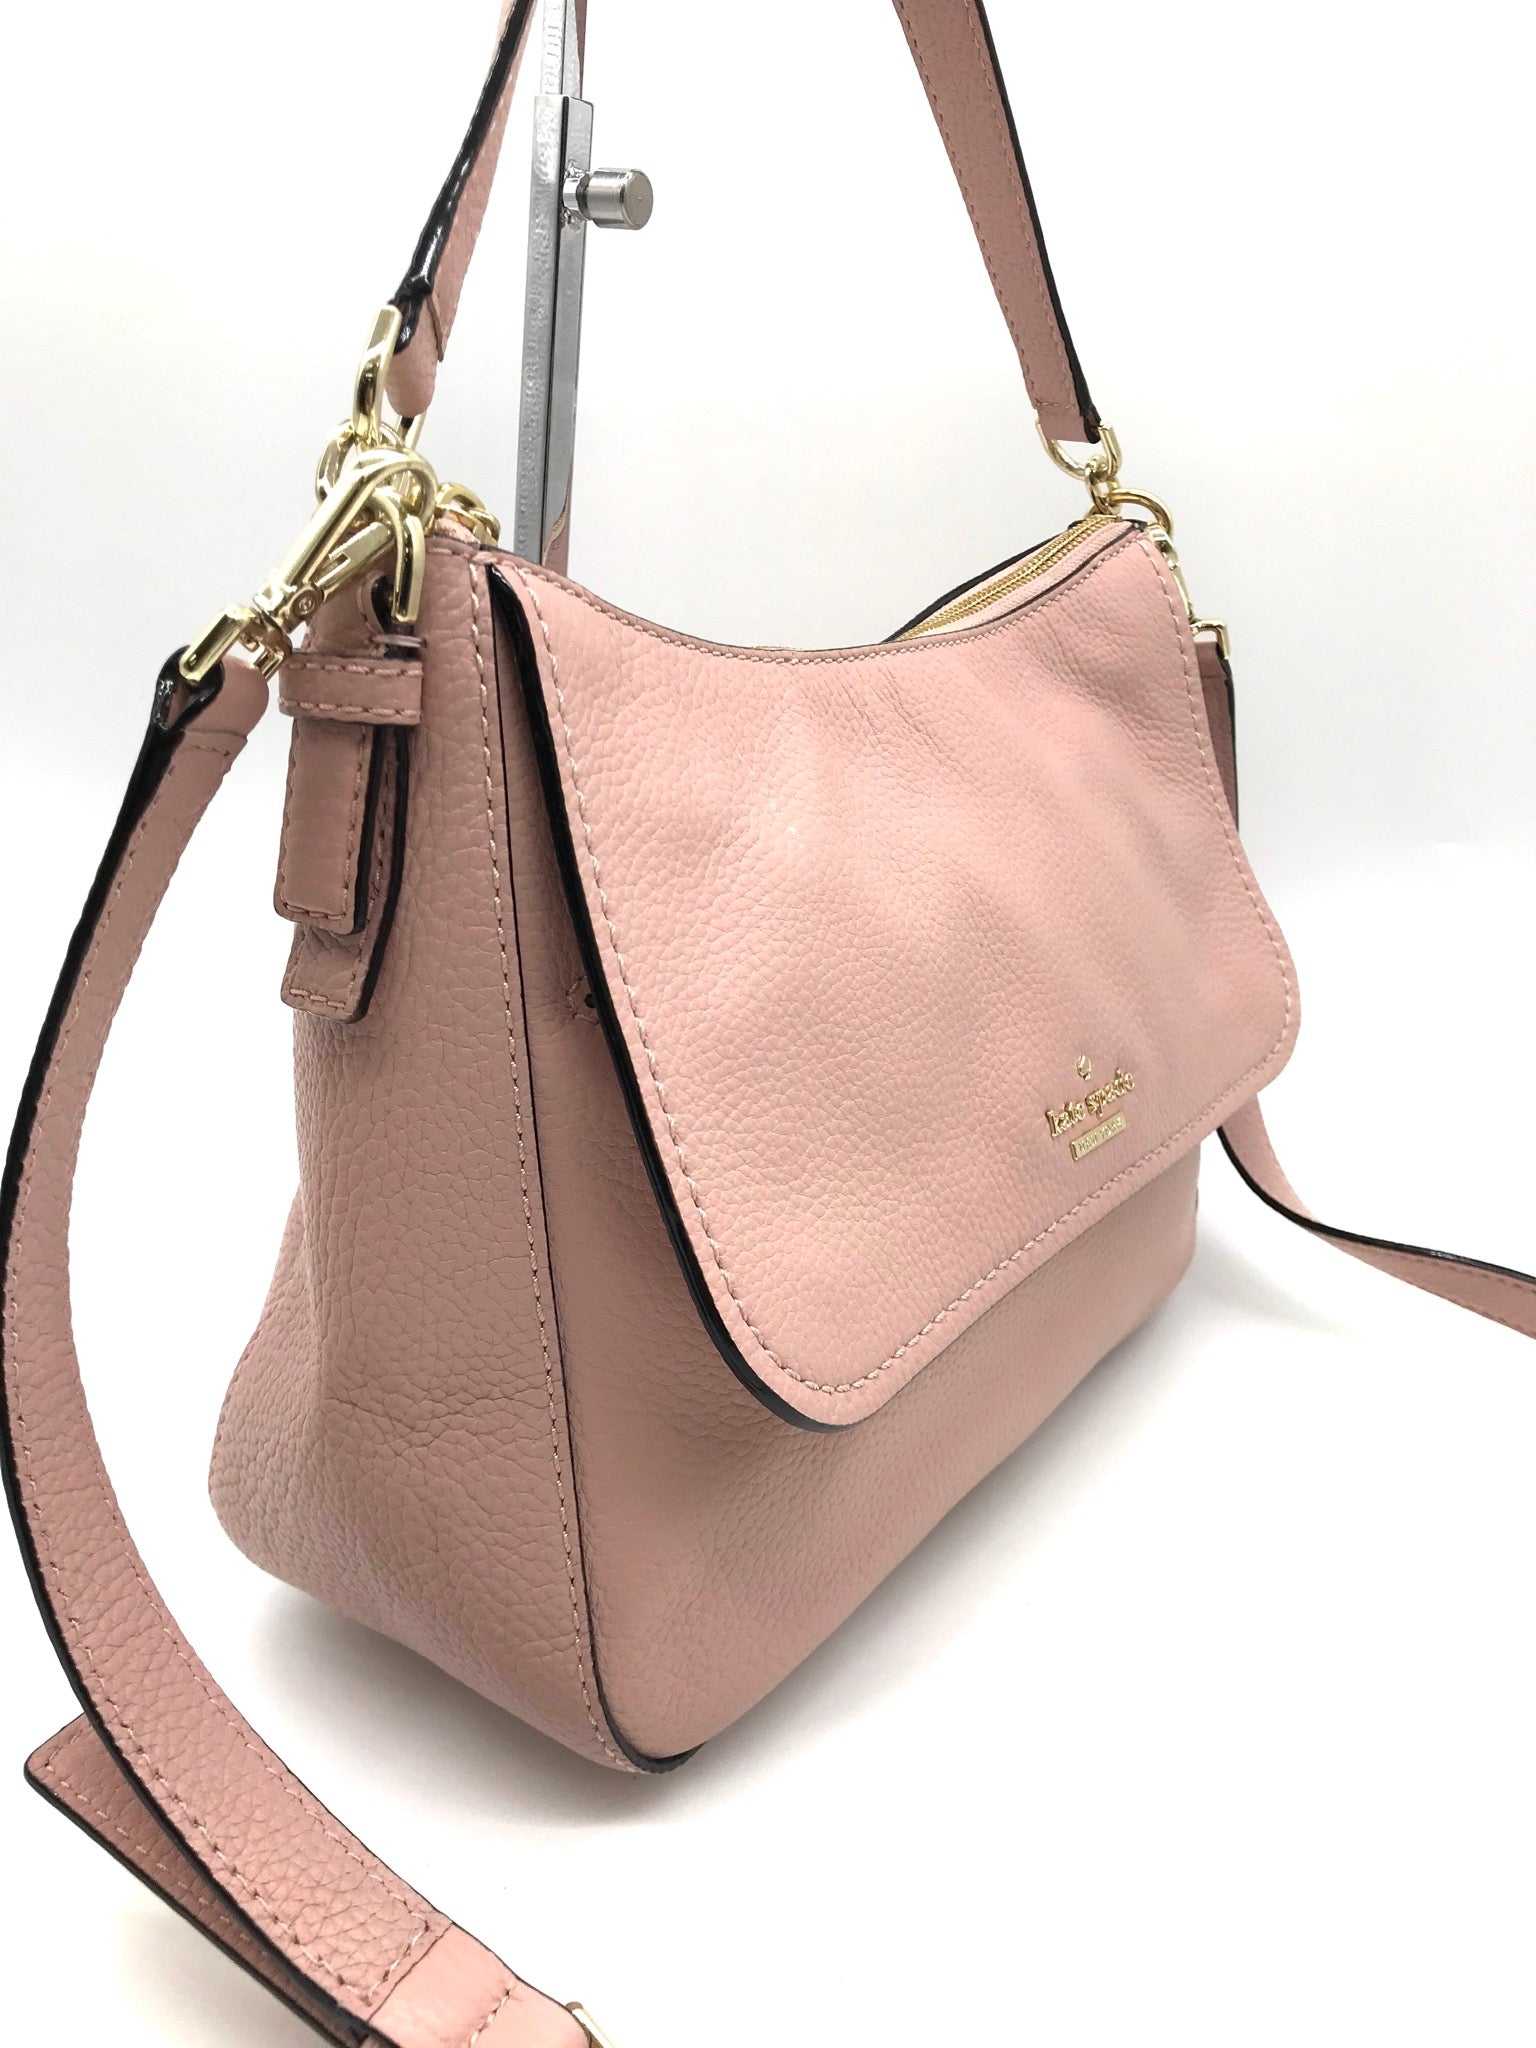 Photo #2 - BRAND: KATE SPADE <BR>STYLE: HANDBAG DESIGNER <BR>COLOR: LIGHT PINK <BR>SIZE: MEDIUM <BR>SKU: 262-26275-66916<BR>IN EXCELLENT SHAPE AND CONDITION